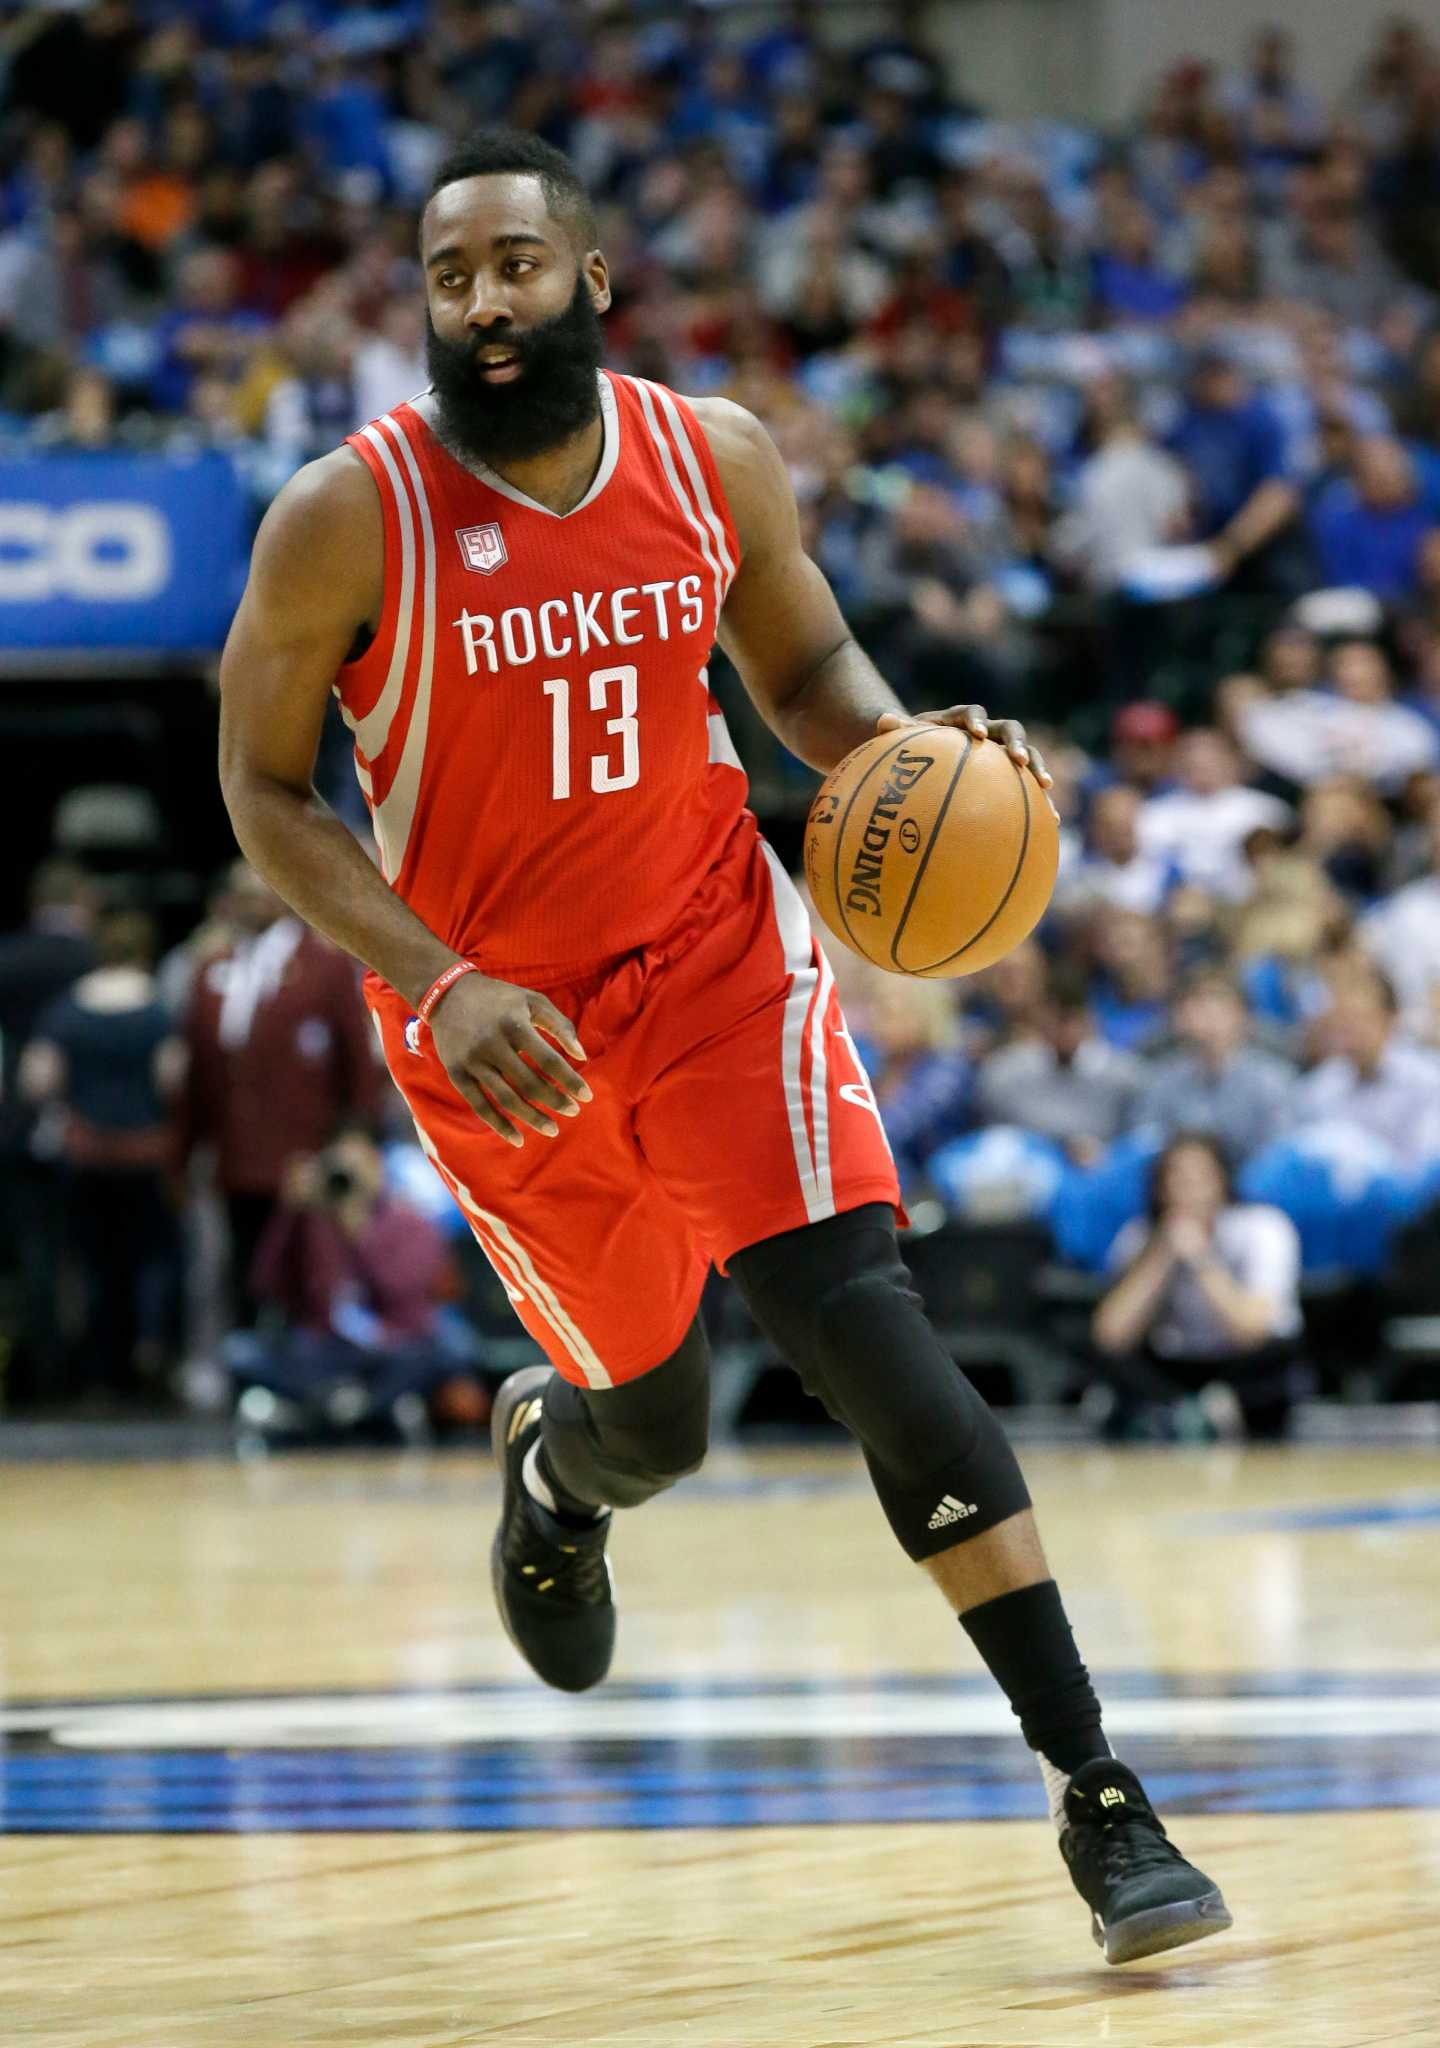 Rockets' James Harden earns starting berth in NBA All-Star Game